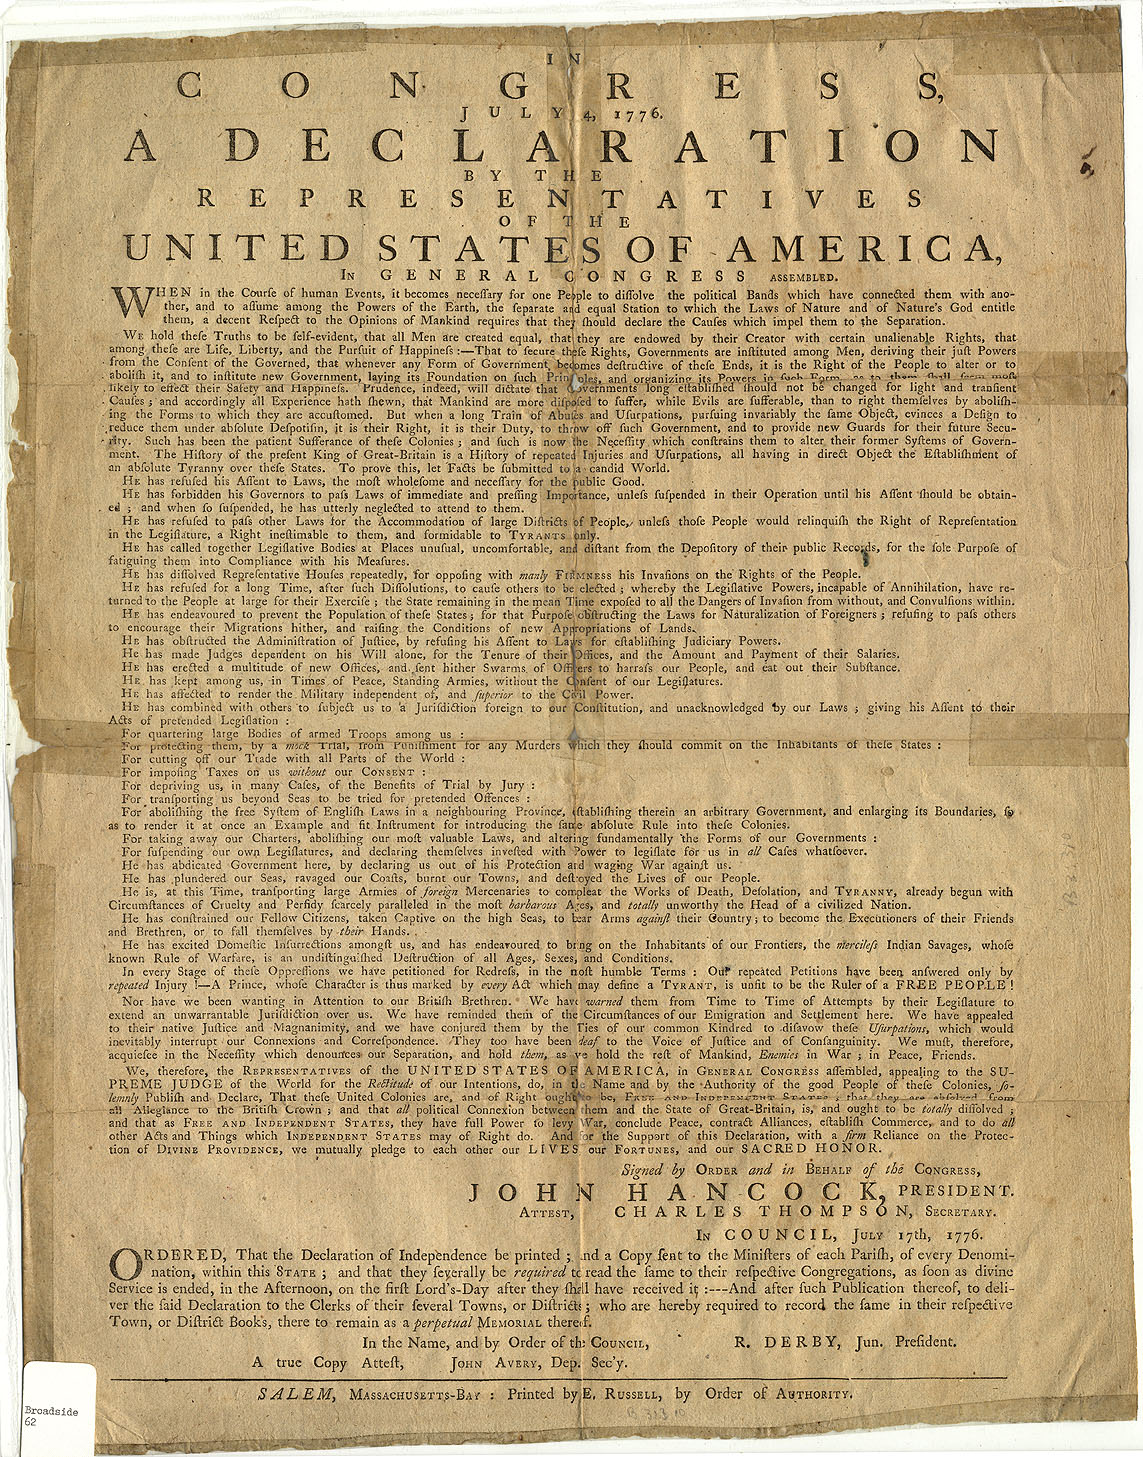 the declaration of independence in the united states and how it affected peoples rights